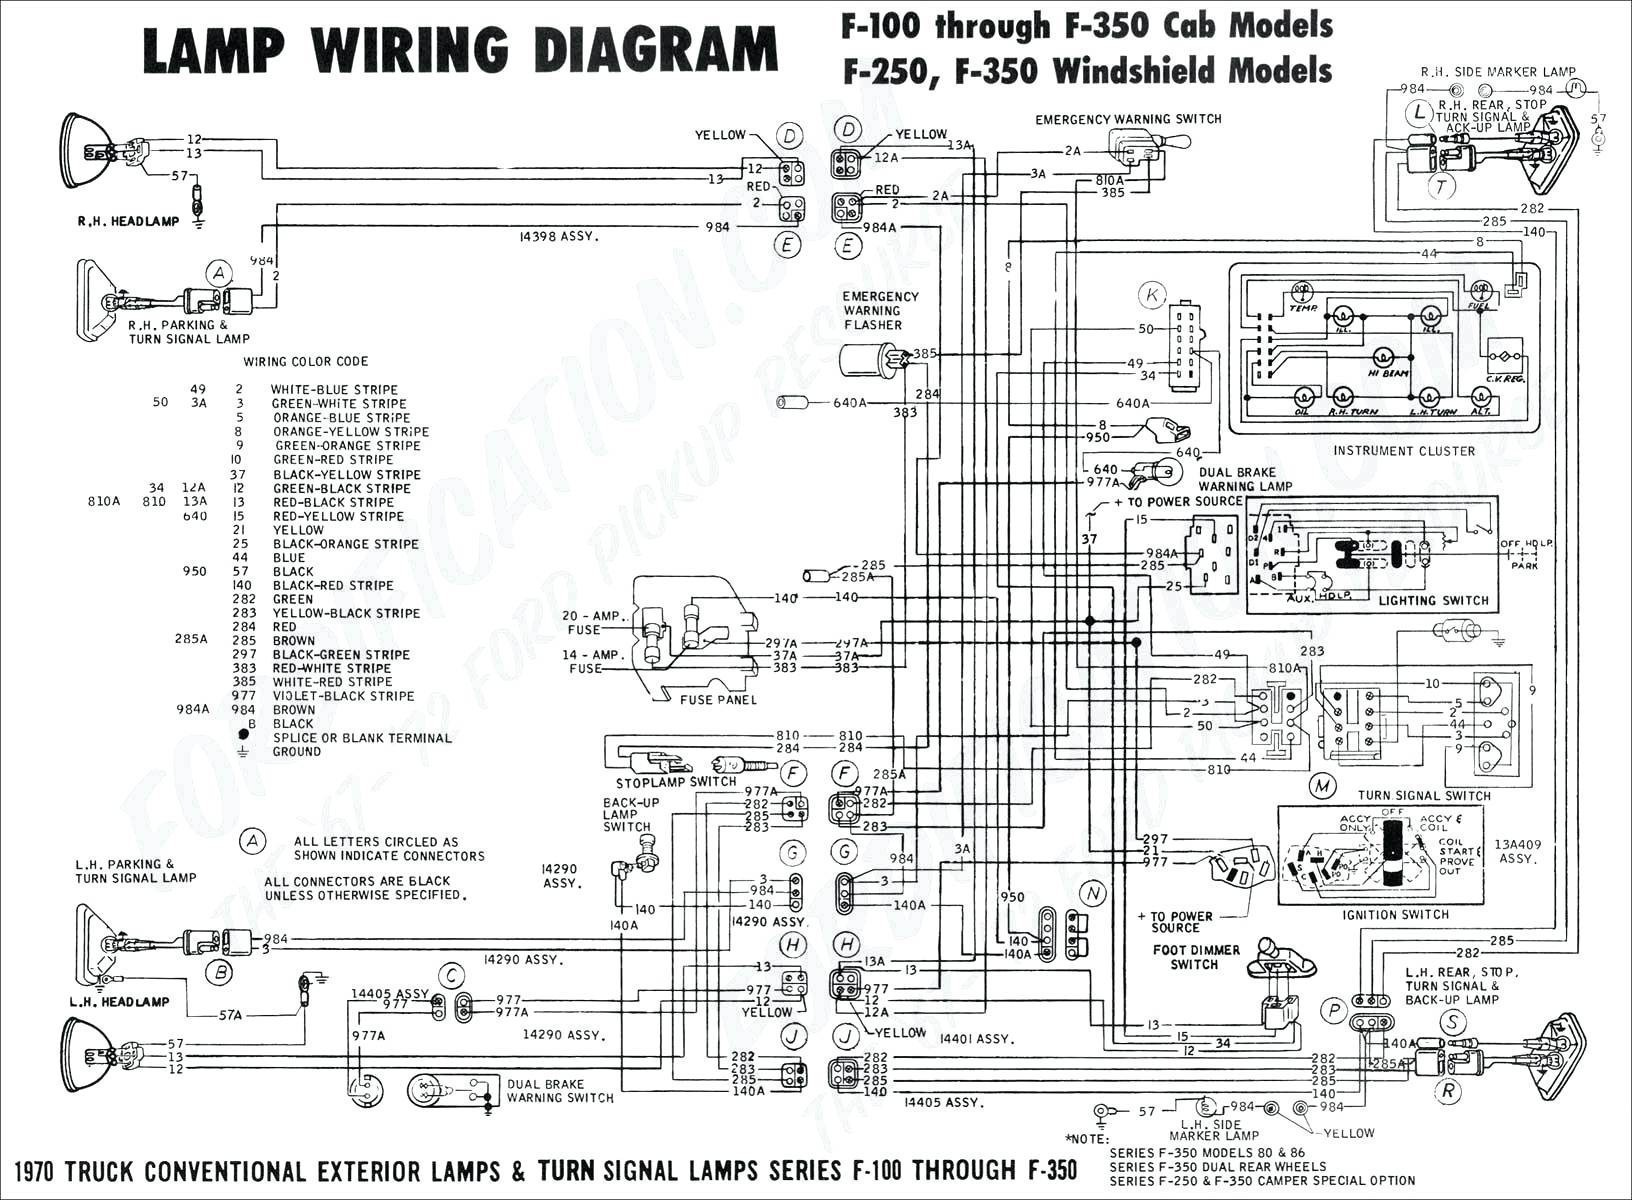 [DIAGRAM_38YU]  Ih 1086 Wiring Diagram - Delco 24 Pin Radio Wiring for Wiring Diagram  Schematics | Ih 1456 Wiring Diagram |  | Wiring Diagram Schematics